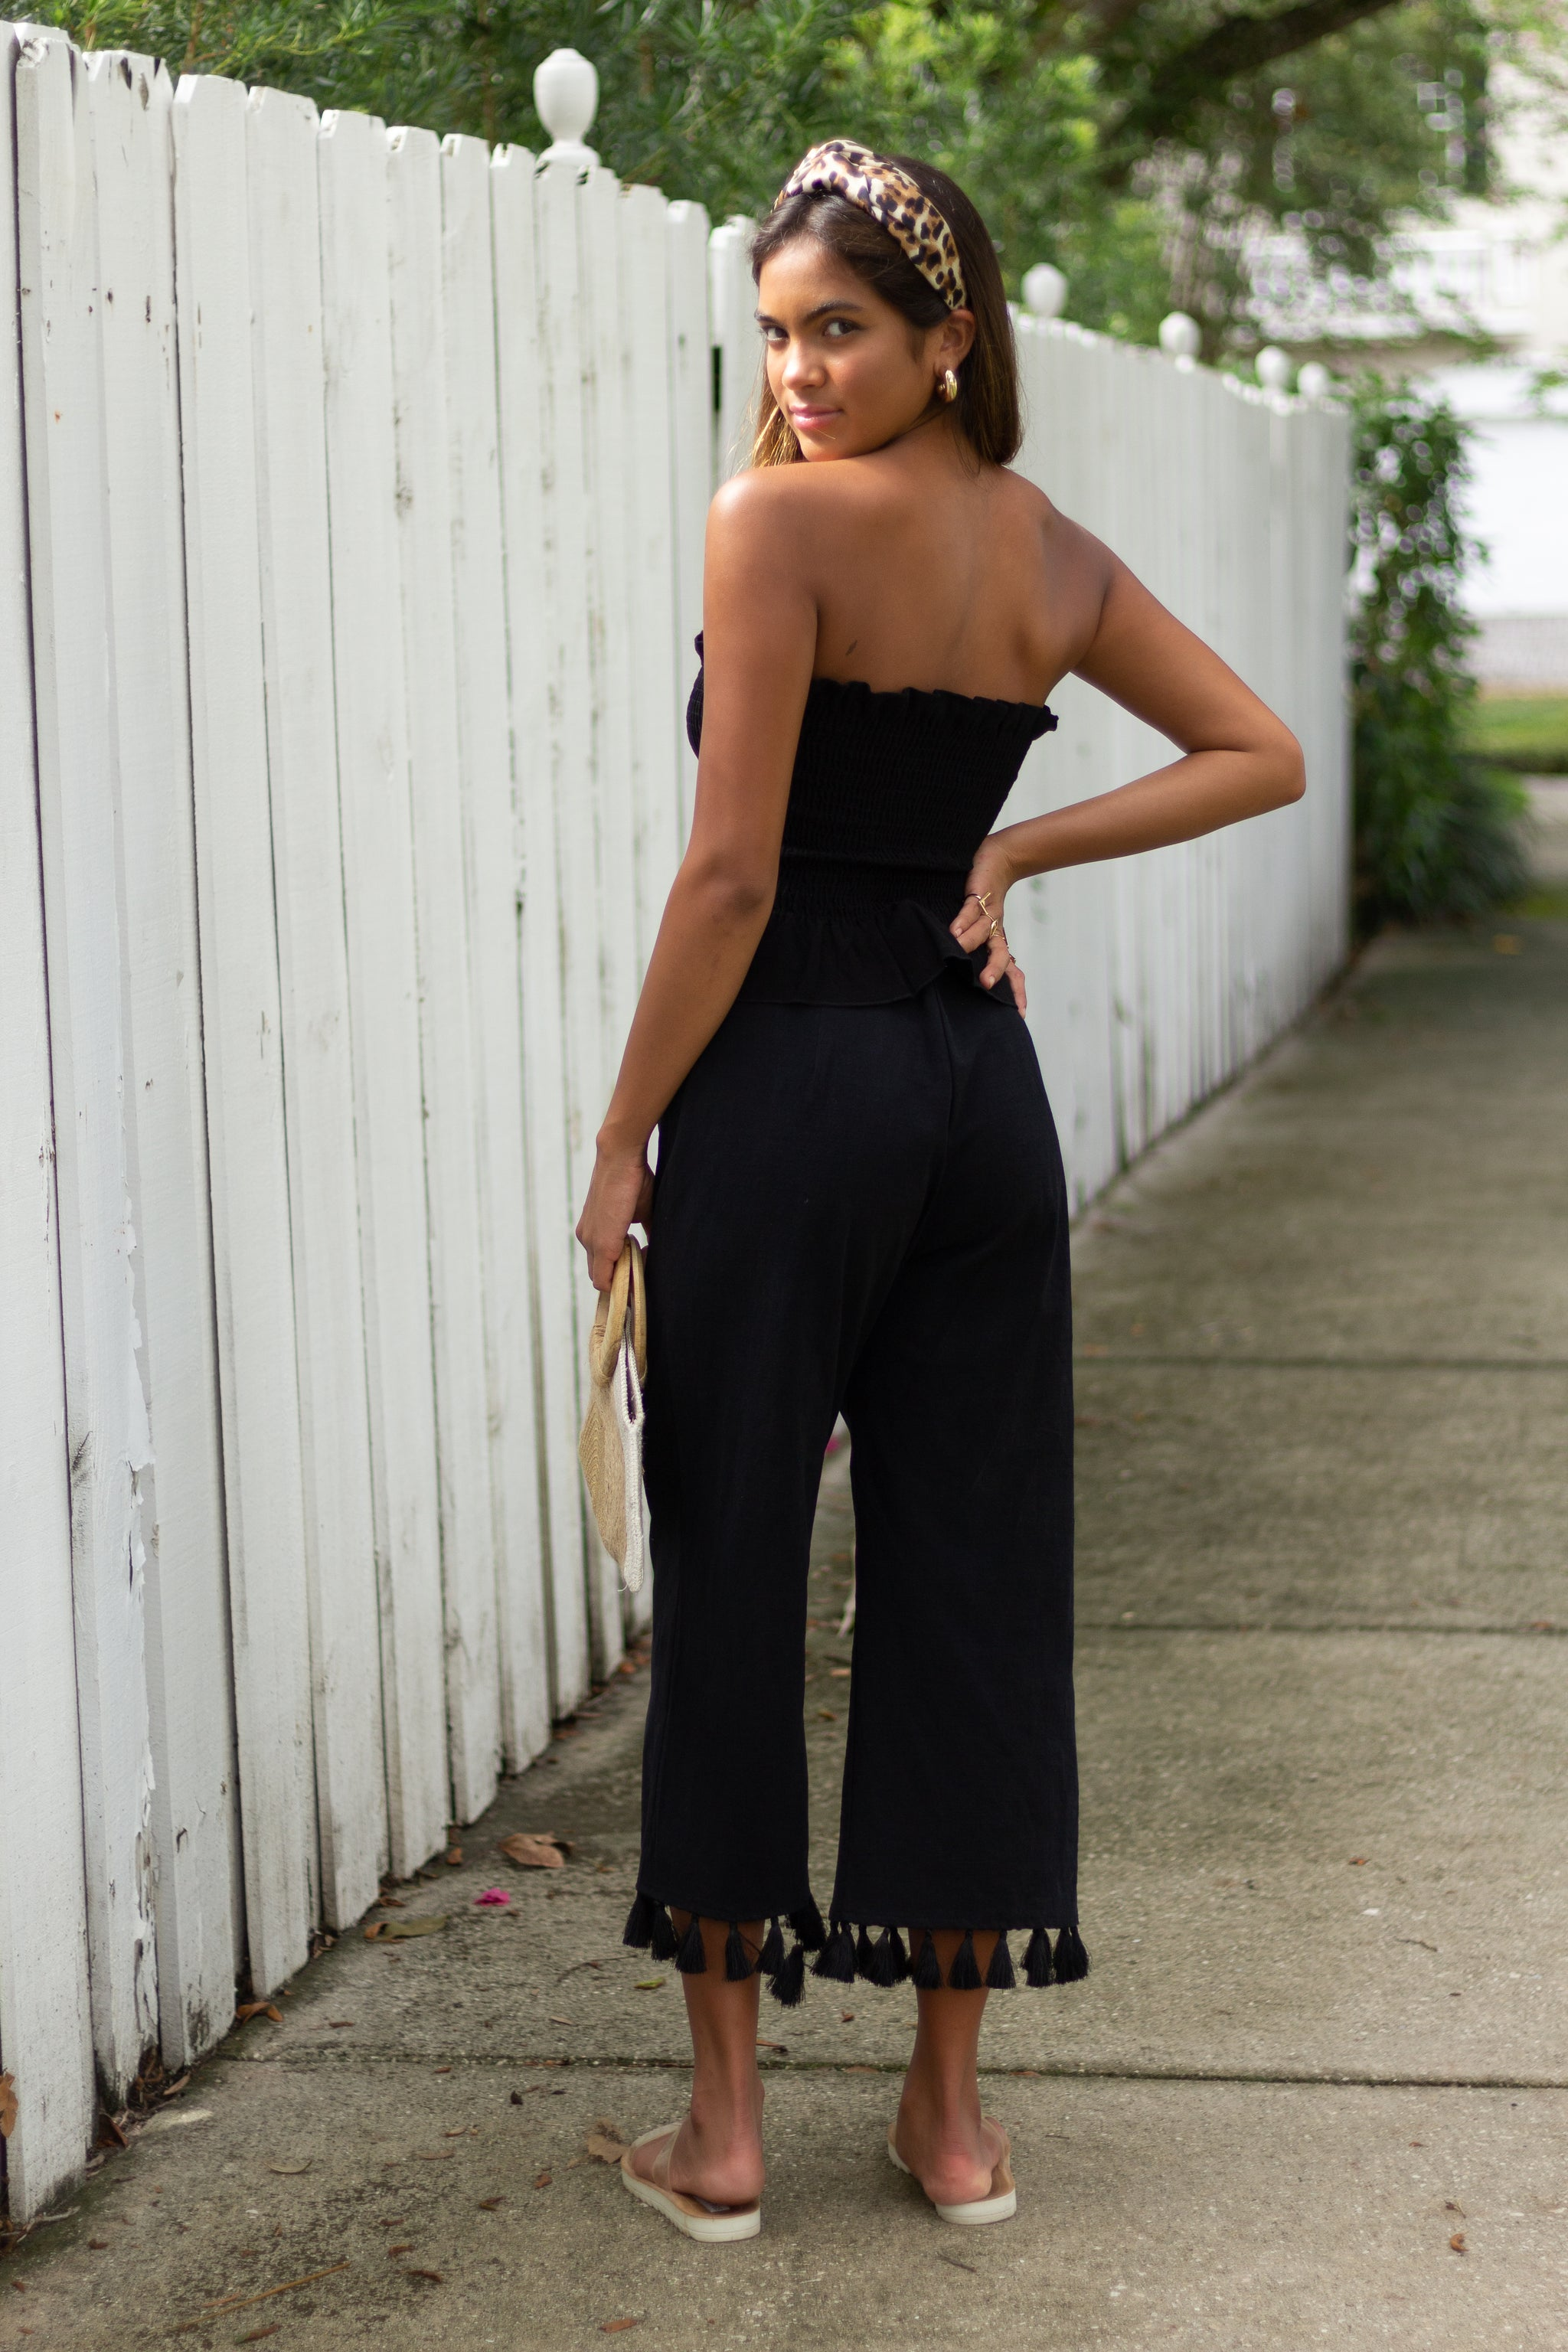 These black pants have a fitted waistband and go down to relaxed wide pant legs and end in a high-water style with tassels across the bottom hem.